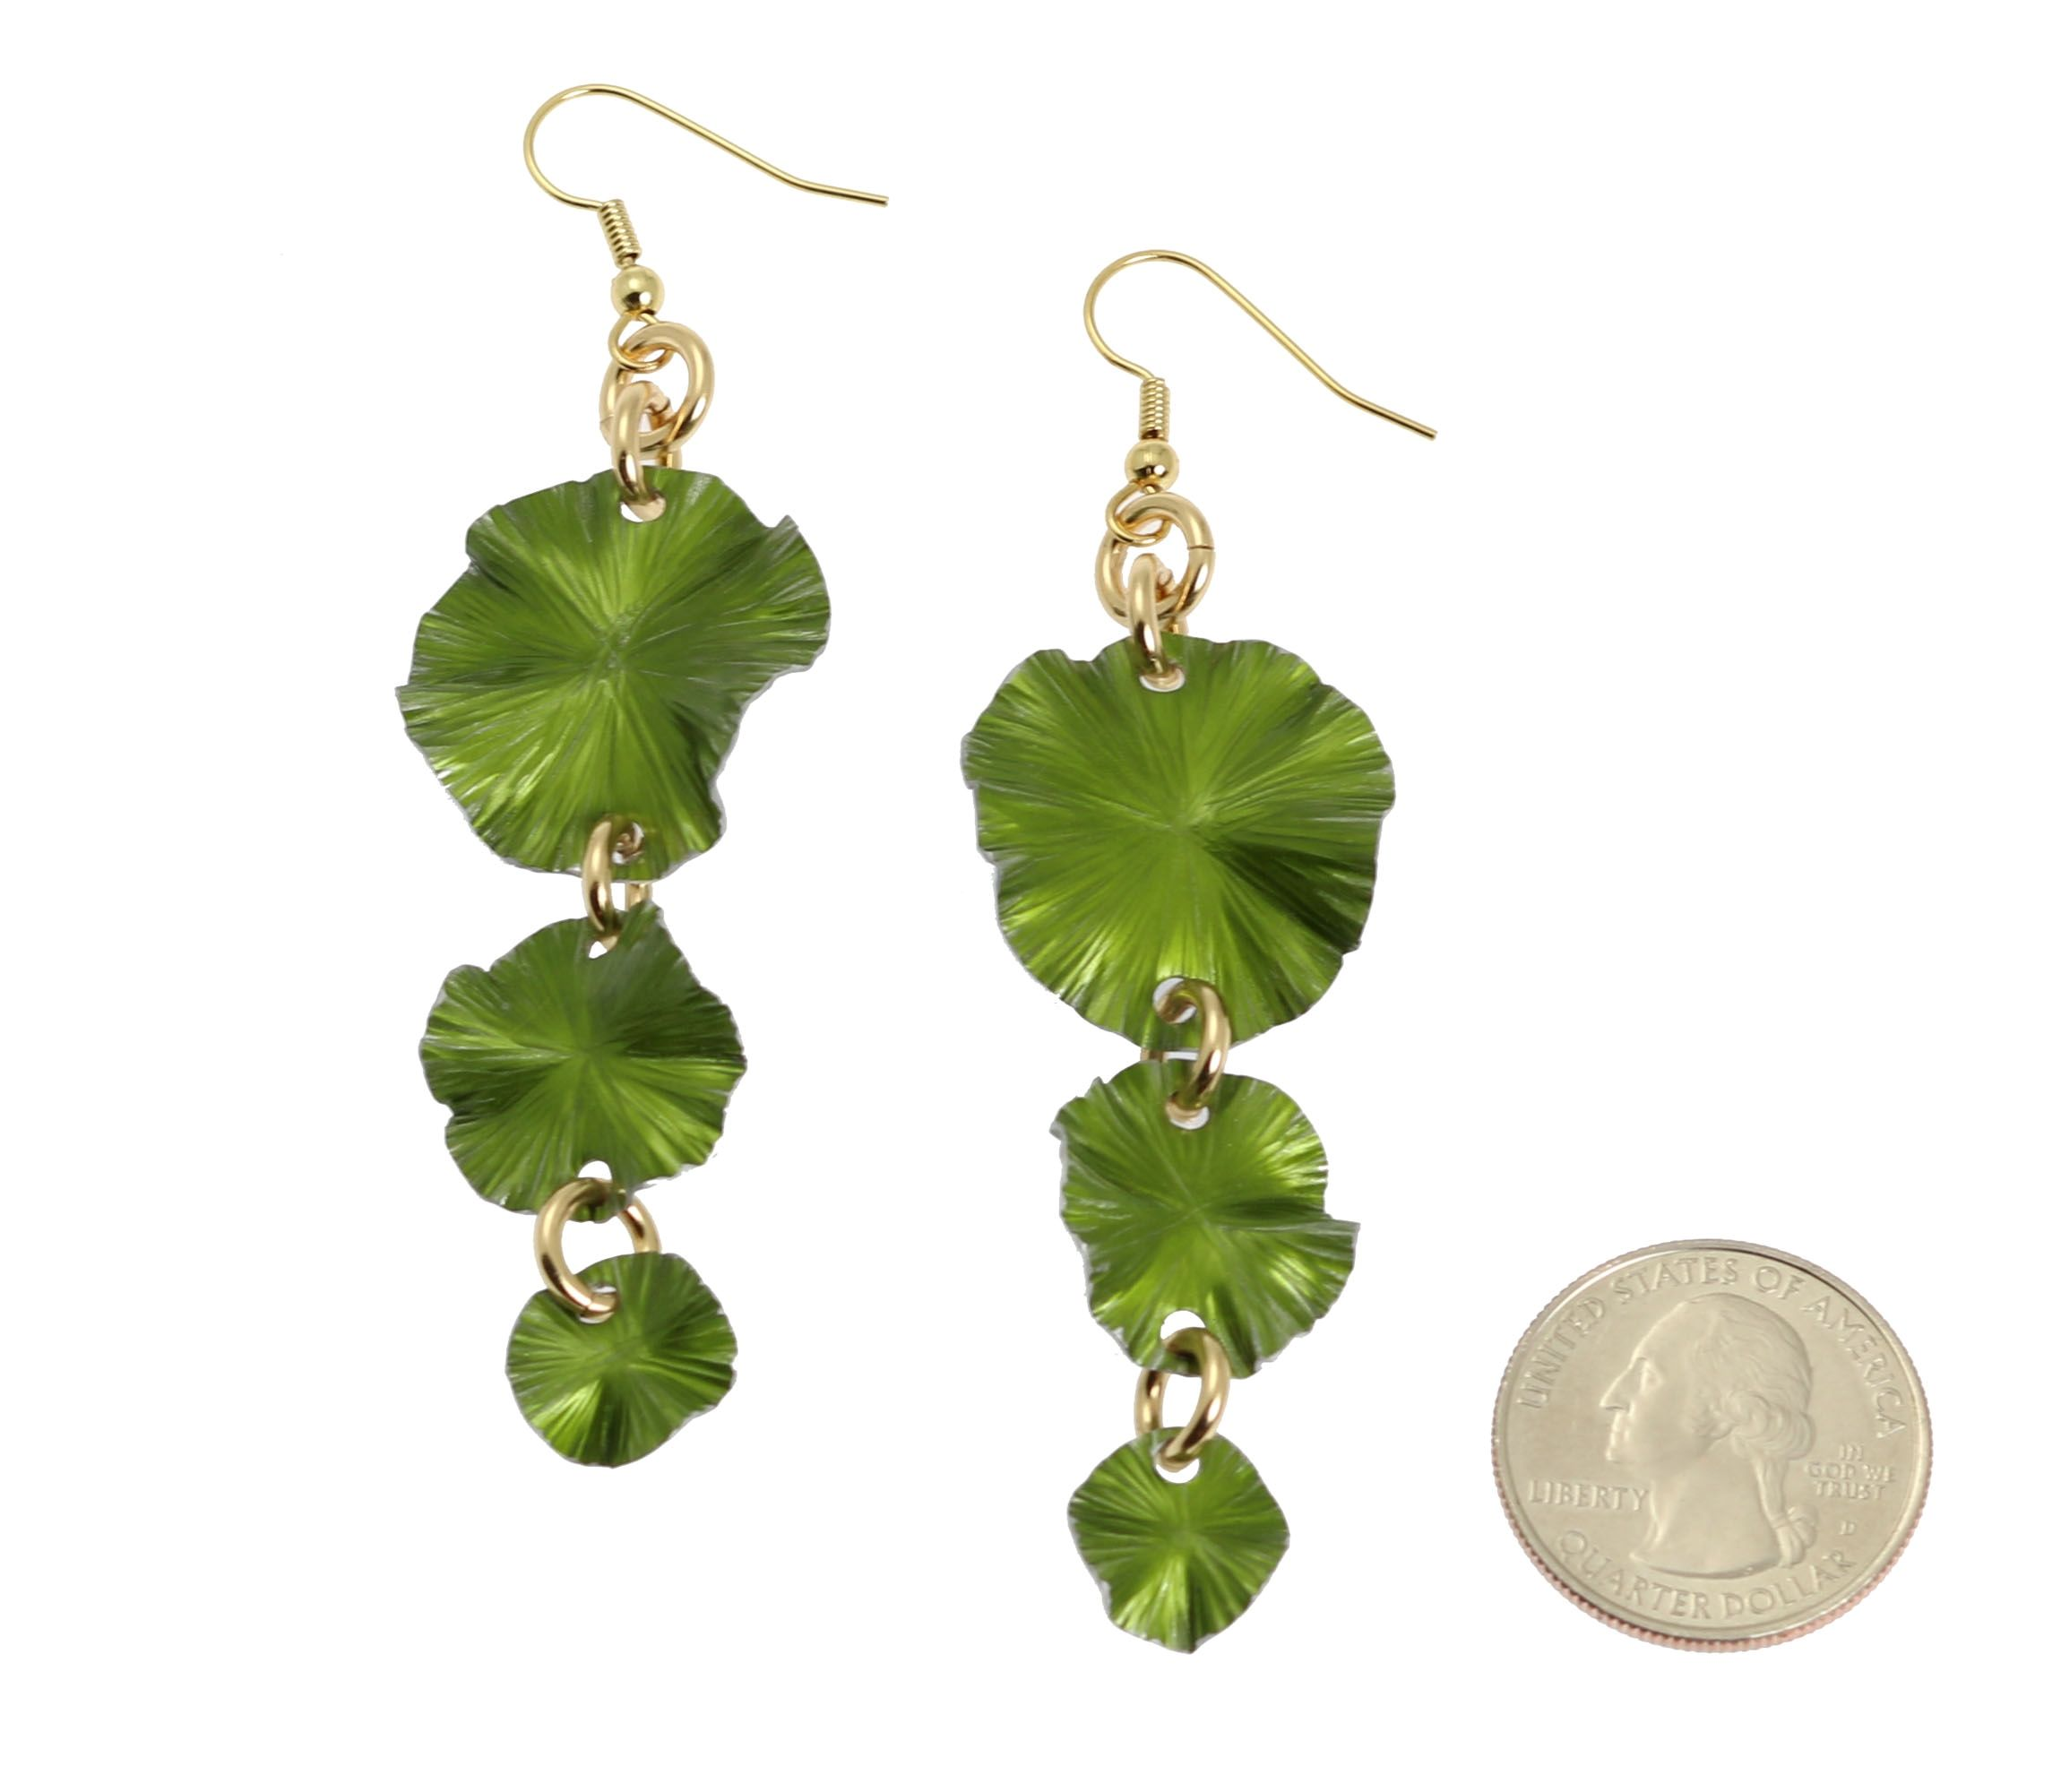 33% OFF! Striking Annodized Aluminum Lime Green Lily Pad Earrings Shown by #Amazon #Silver http://www.amazon.com/dp/B006ZC9WD8